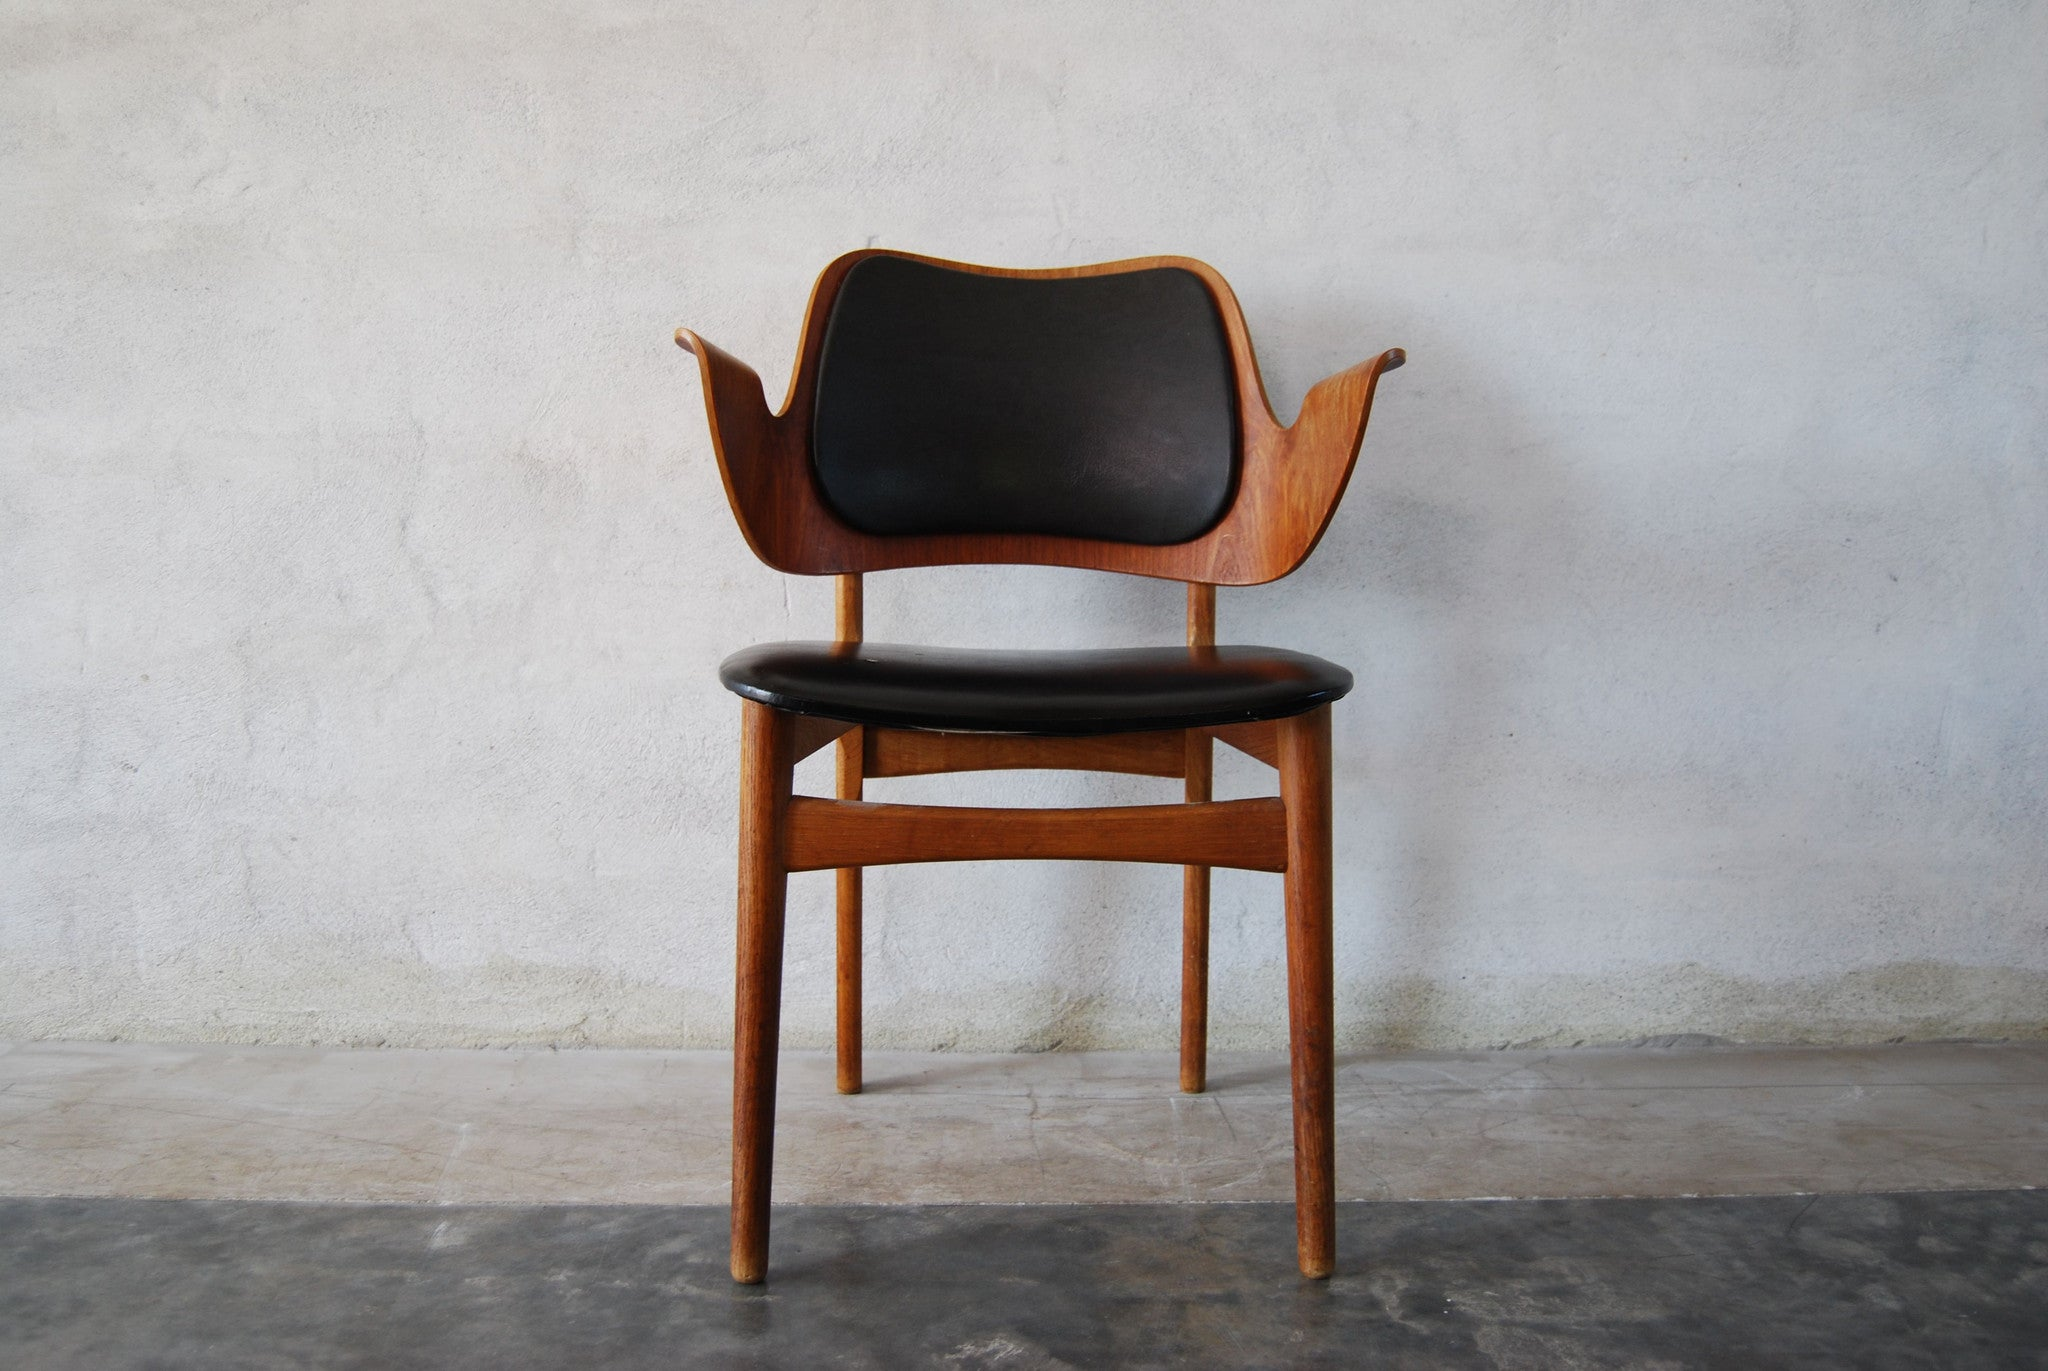 Chase & Sorensen Desk/dining chair by Hans Olsen